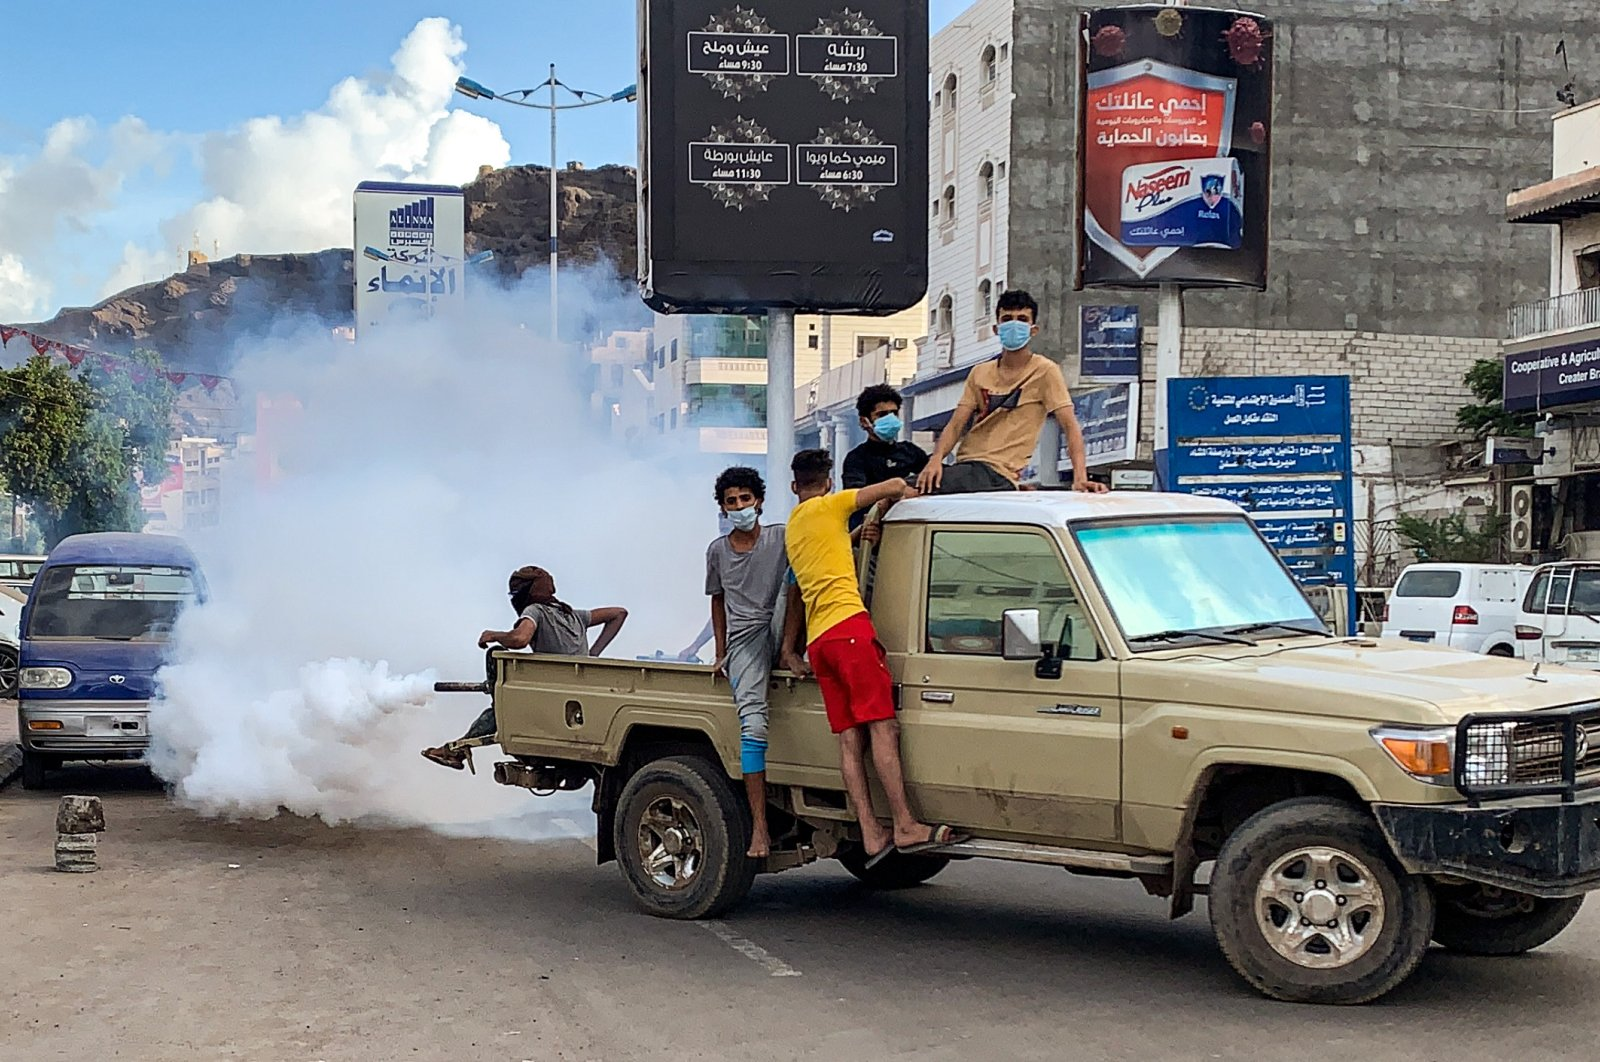 Youth wearing masks as a precaution due to COVID-19, sit in the back of a truck carrying out a fumigation in an area in Yemen's southern coastal city of Aden, May 5, 2020. (AFP Photo)